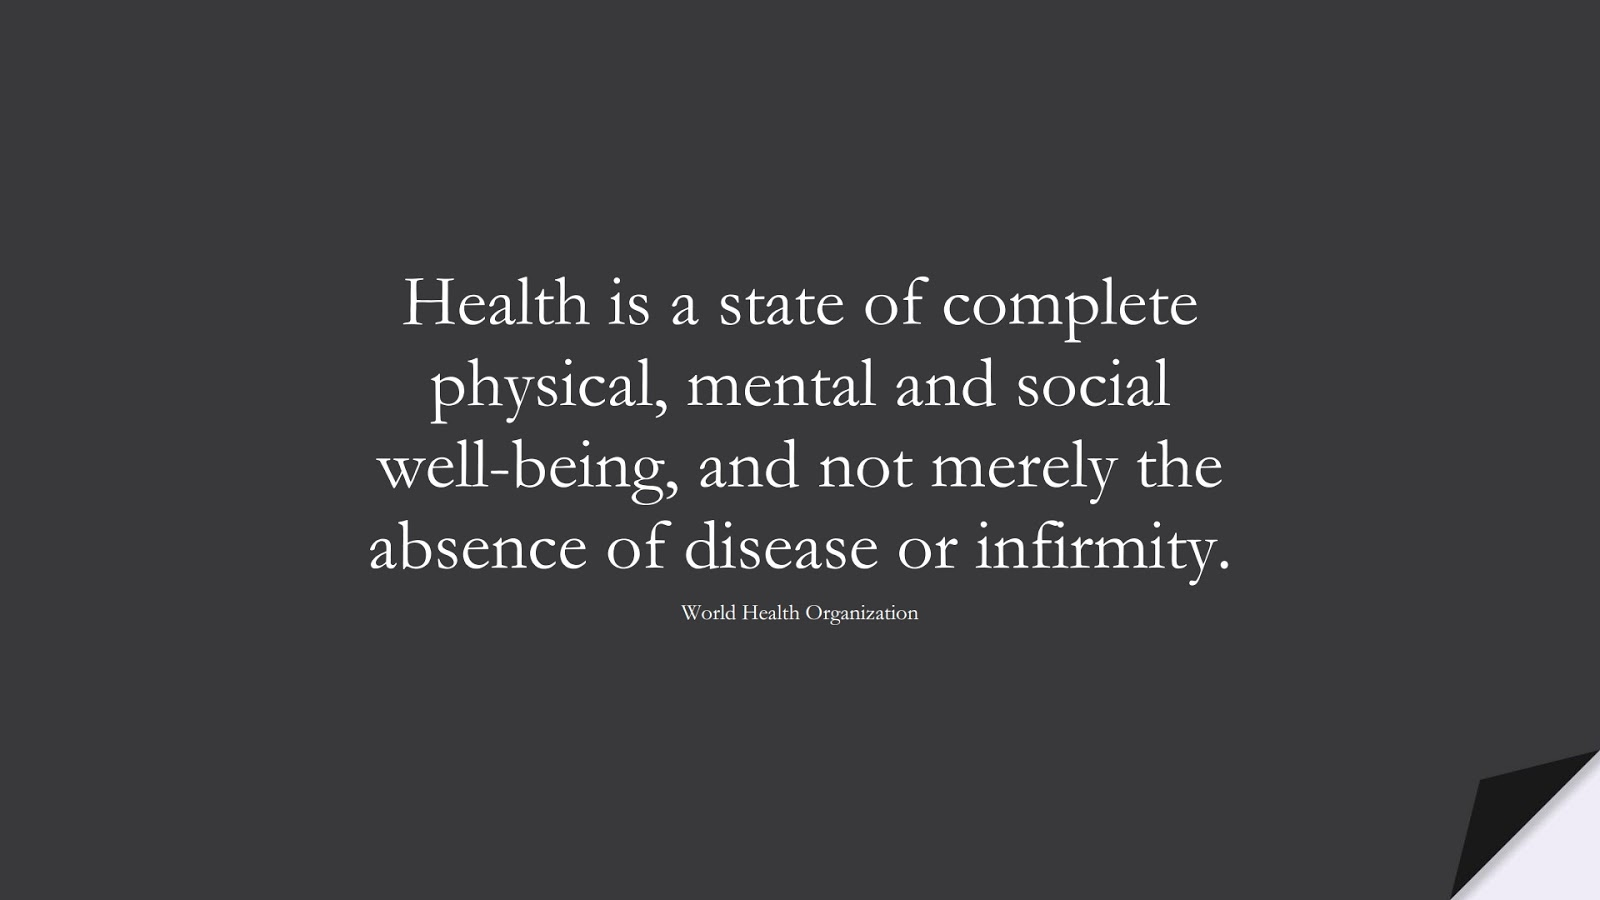 Health is a state of complete physical, mental and social well-being, and not merely the absence of disease or infirmity. (World Health Organization);  #HealthQuotes